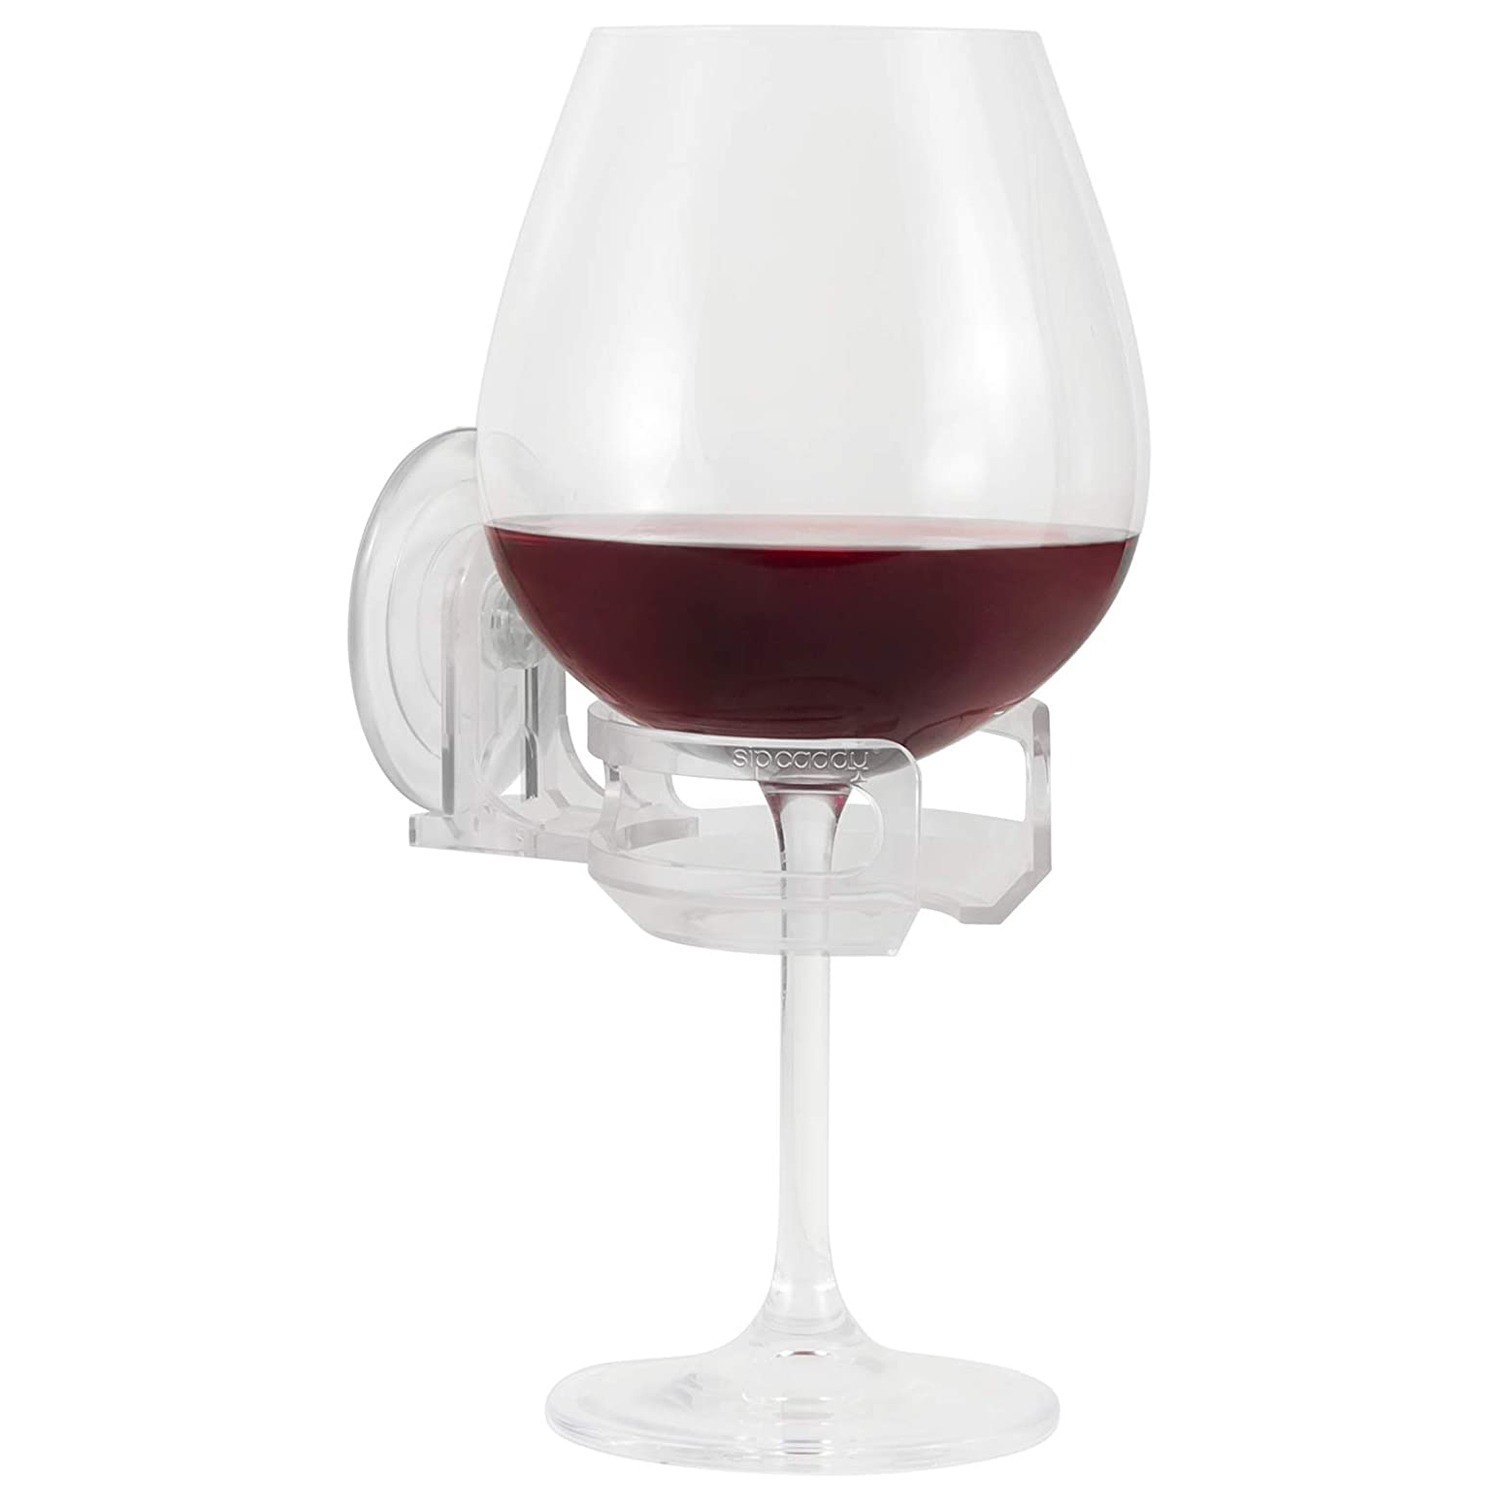 sipcaddy bath shower portable cupholder caddy beer wine